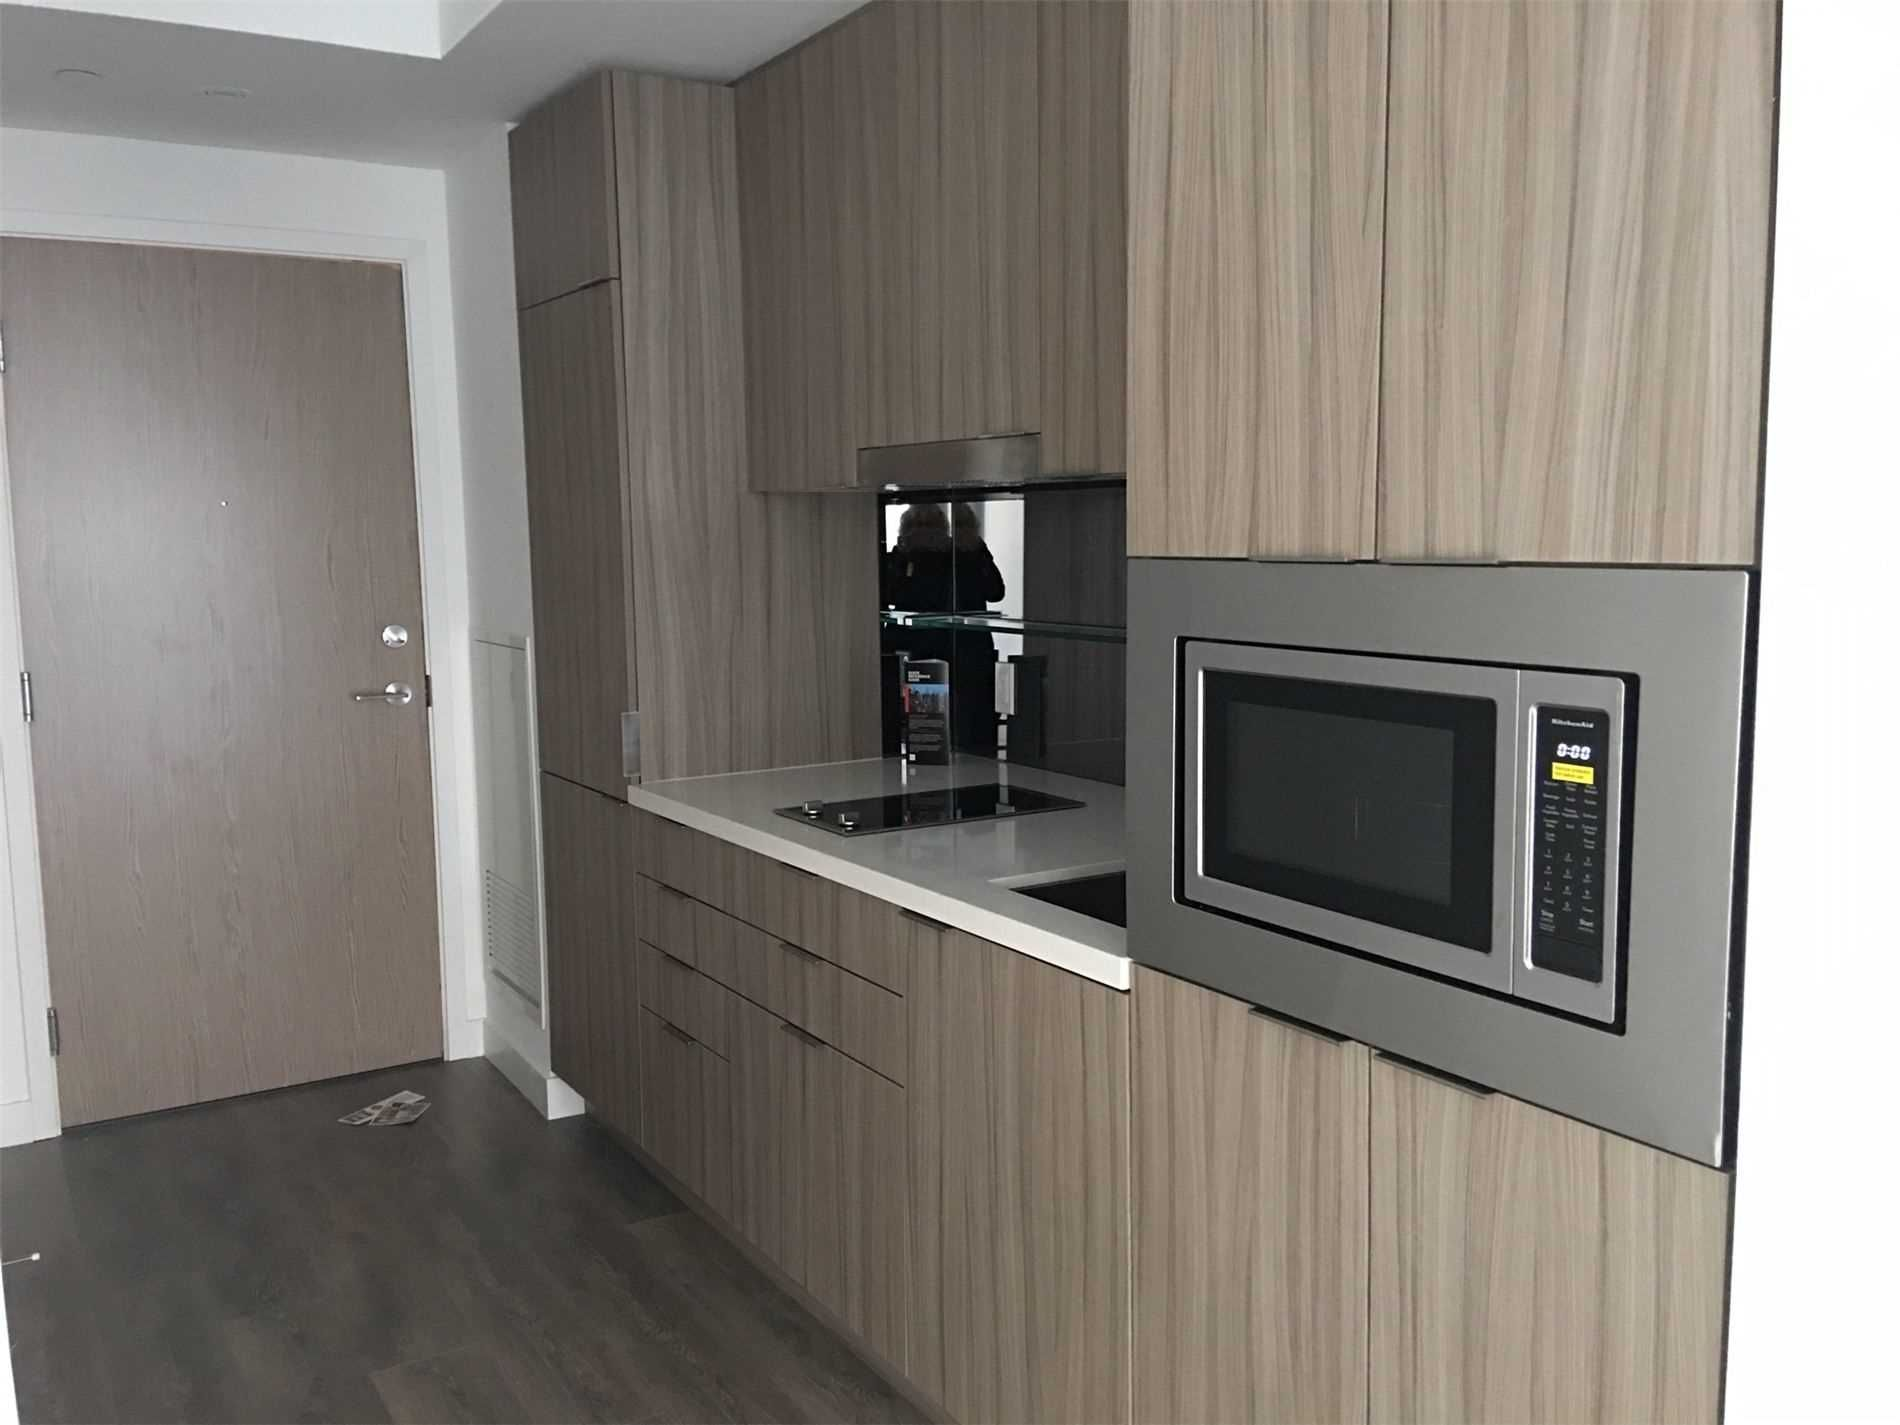 215 Queen St W, unit 1807 for rent in Toronto - image #2